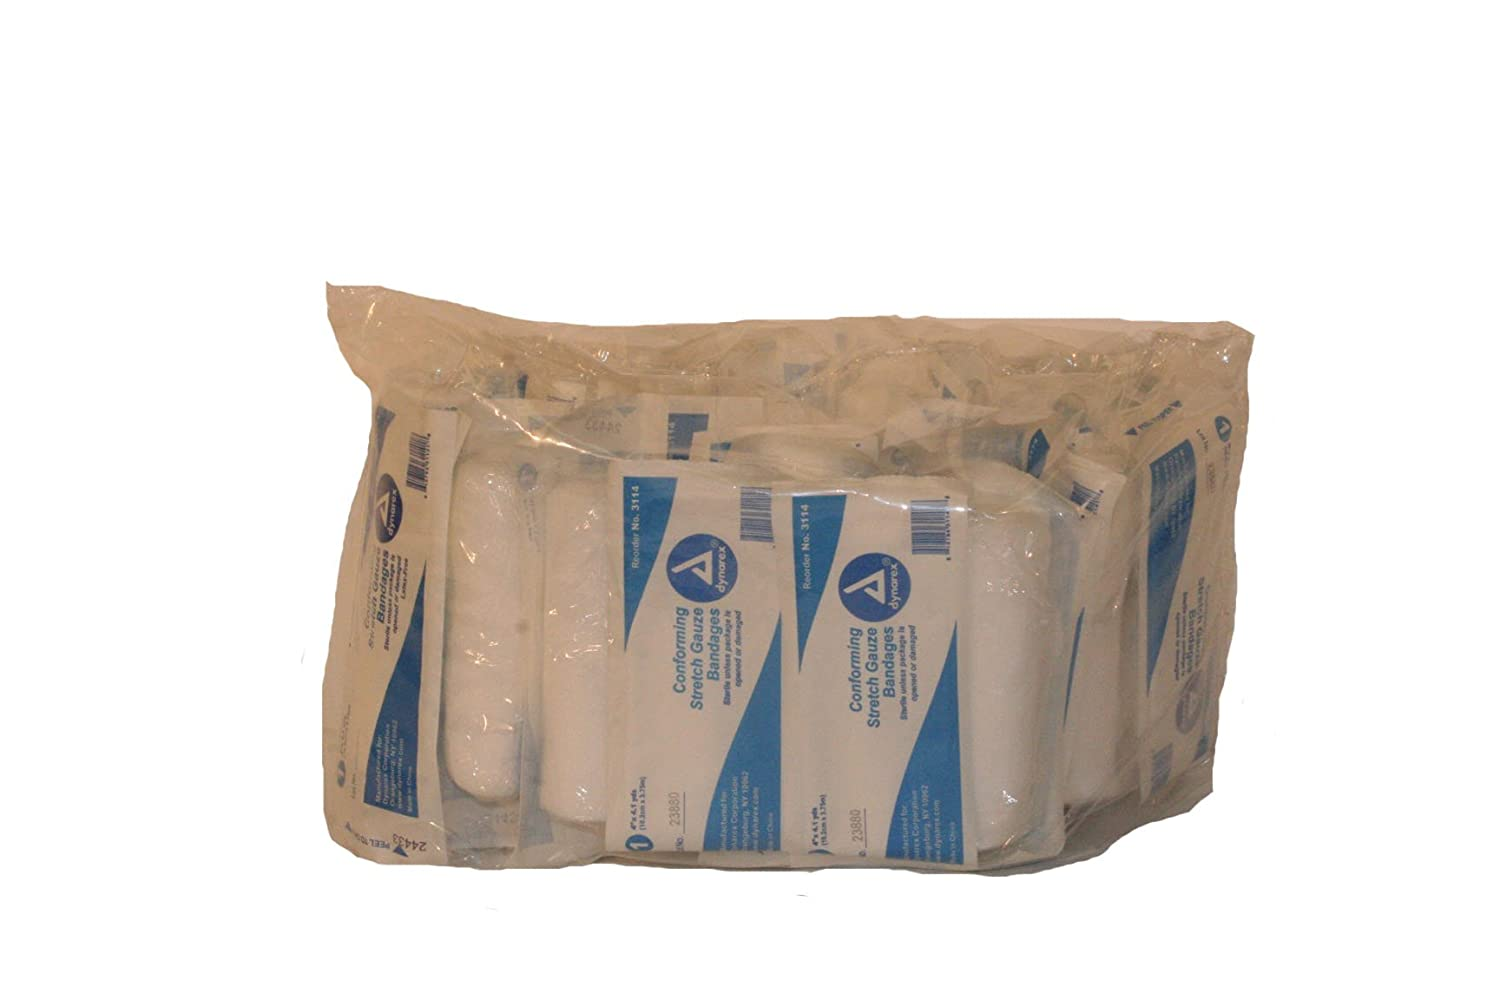 4-3//32 yds Length x 4 Width First Voice TS-3114 Conforming Stretch Sterile Gauze Bandage 4-3//32 yds Length x 4 Width Pack of 30 Pack of 30